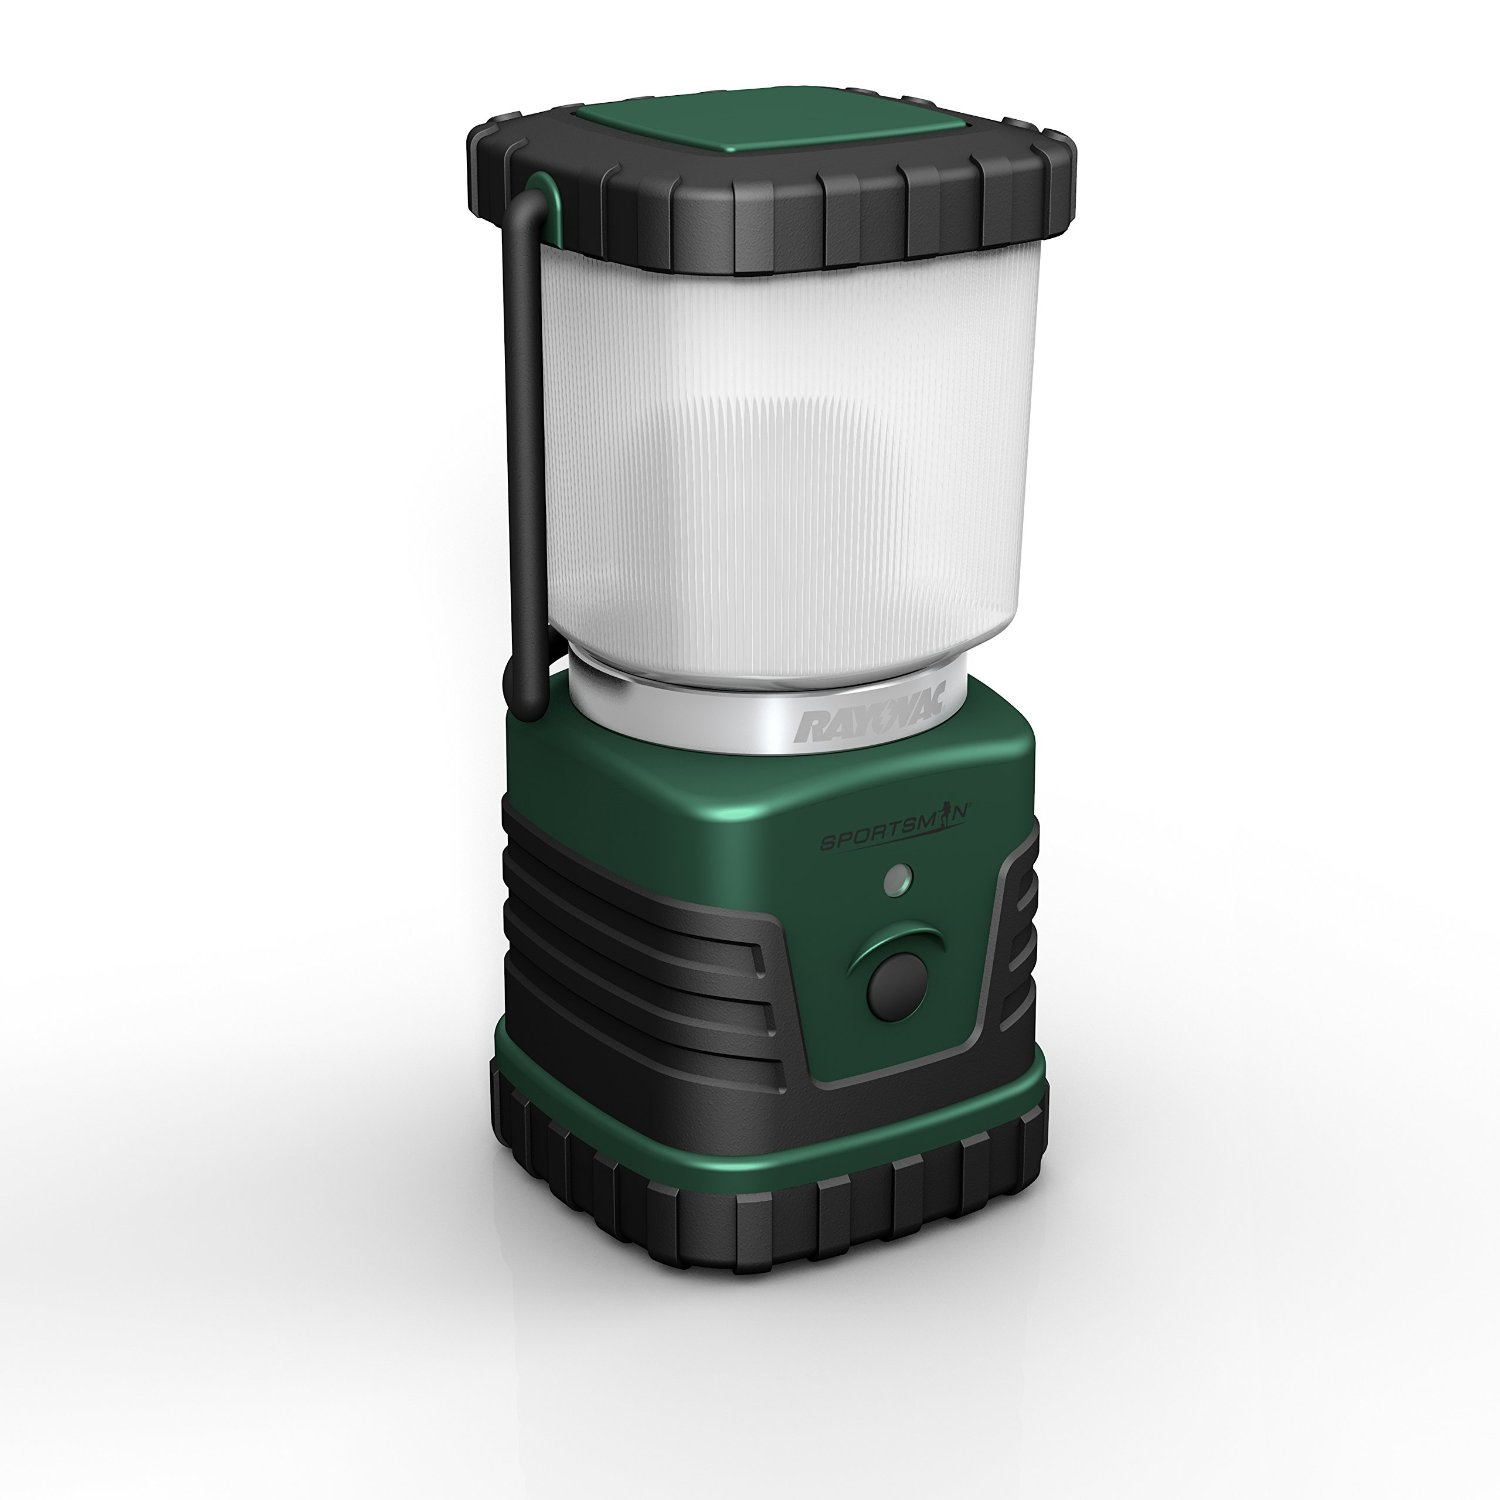 4 WATT LED LANTERN W/ 240 LUMENS & 3 MODES/ OPERATES 90 HOURS ON 3 ALK. D BATTERIES (NOT INCLUDED)